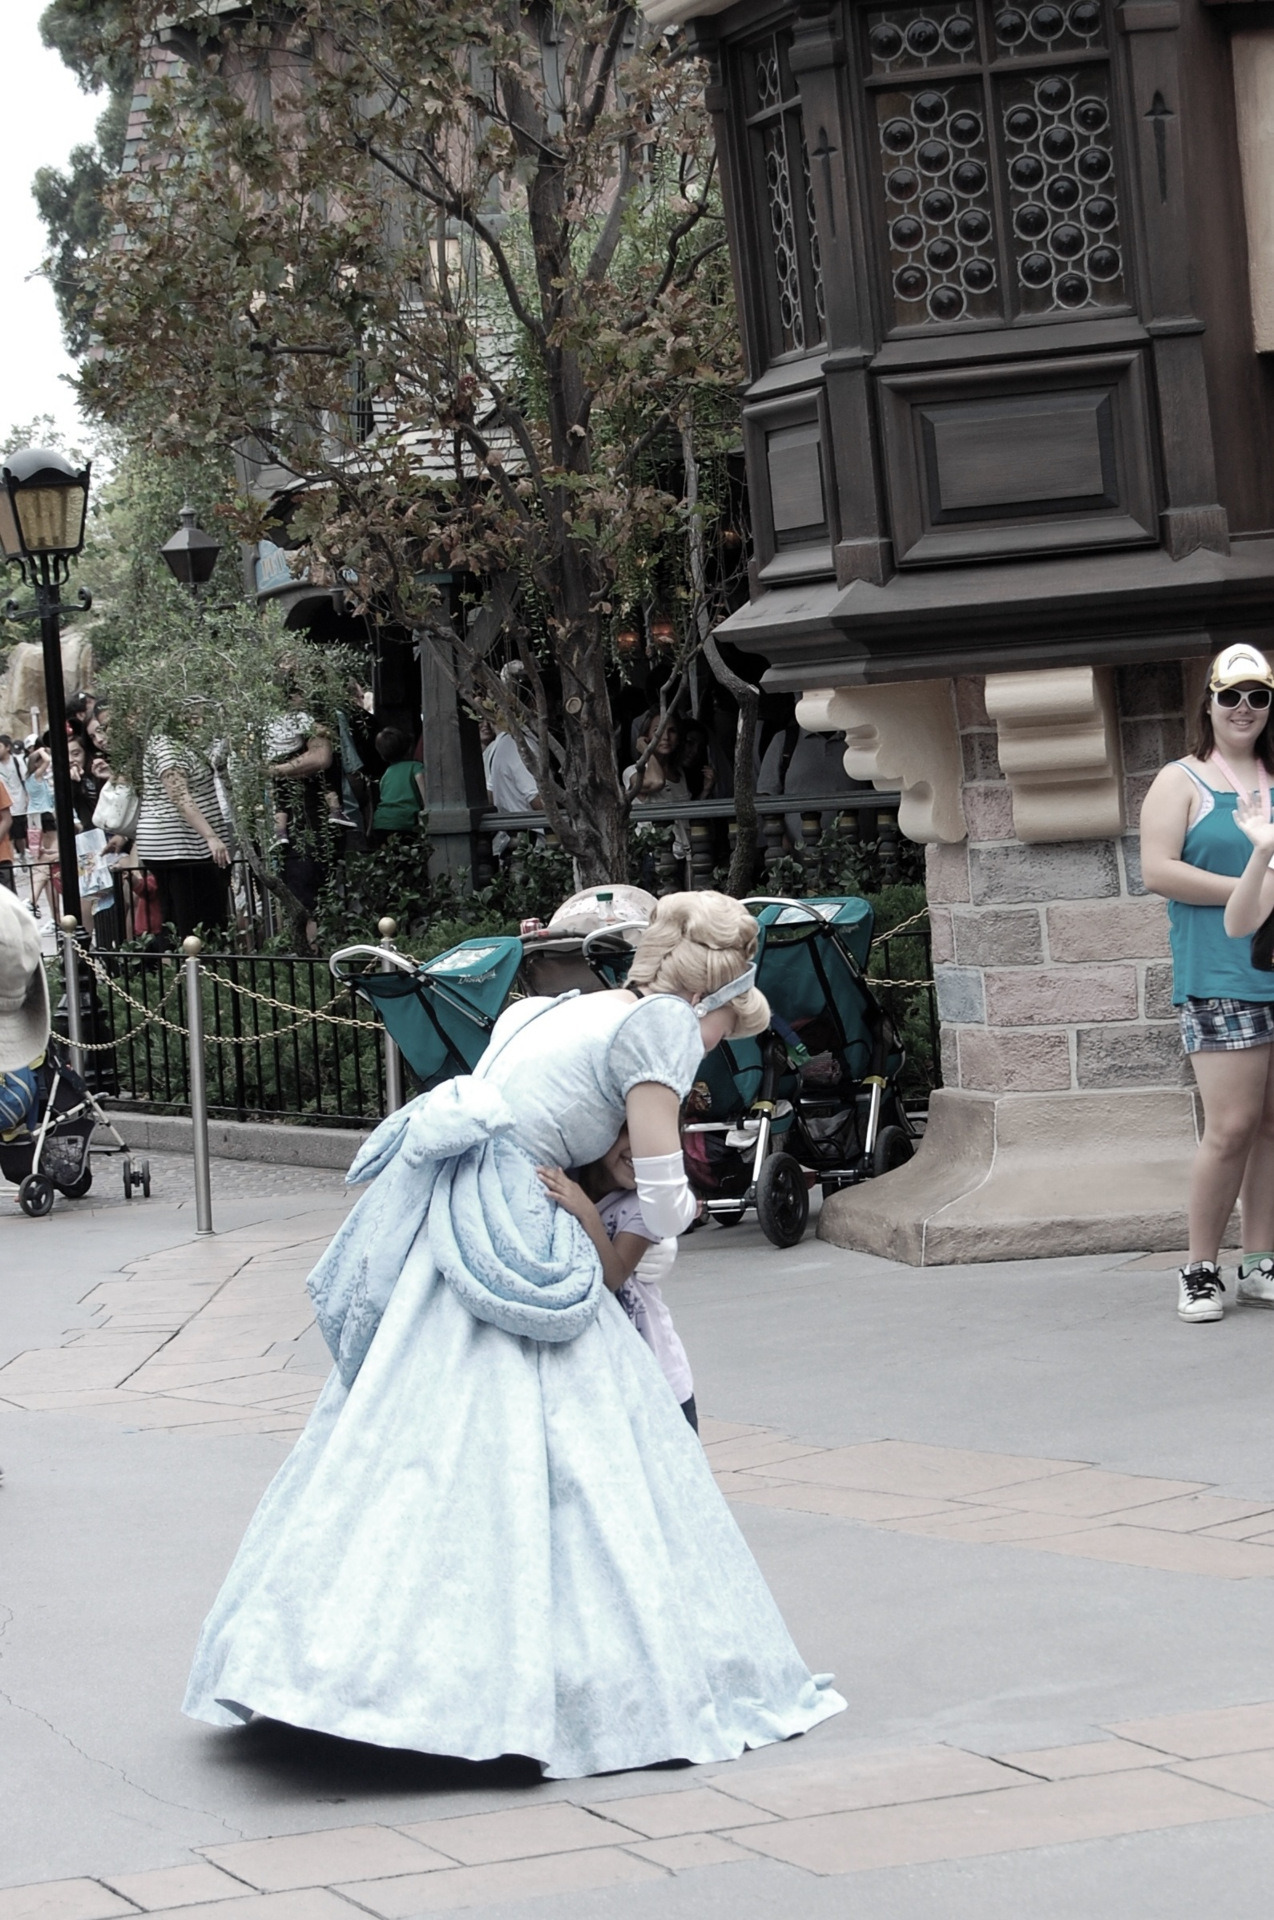 "ashappyasdisney:  Just Cinderella, strolling through Fantasyland. If you've only ever been to Disneyland, you'll be like ""yeah, that's totally normal, so what?"" If you've only ever been to Walt Disney World, you get why this is insane. The characters did WHATEVER THEY WANTED. And the guests behaved like civilized human beings around them. It was madness, sheer madness.  I just recently discovered how much freedom the cast members get with character interaction in Disneyland. As much as I love Disney World, I really resent them for not having this kind of character interaction. It just seems so much more magical."